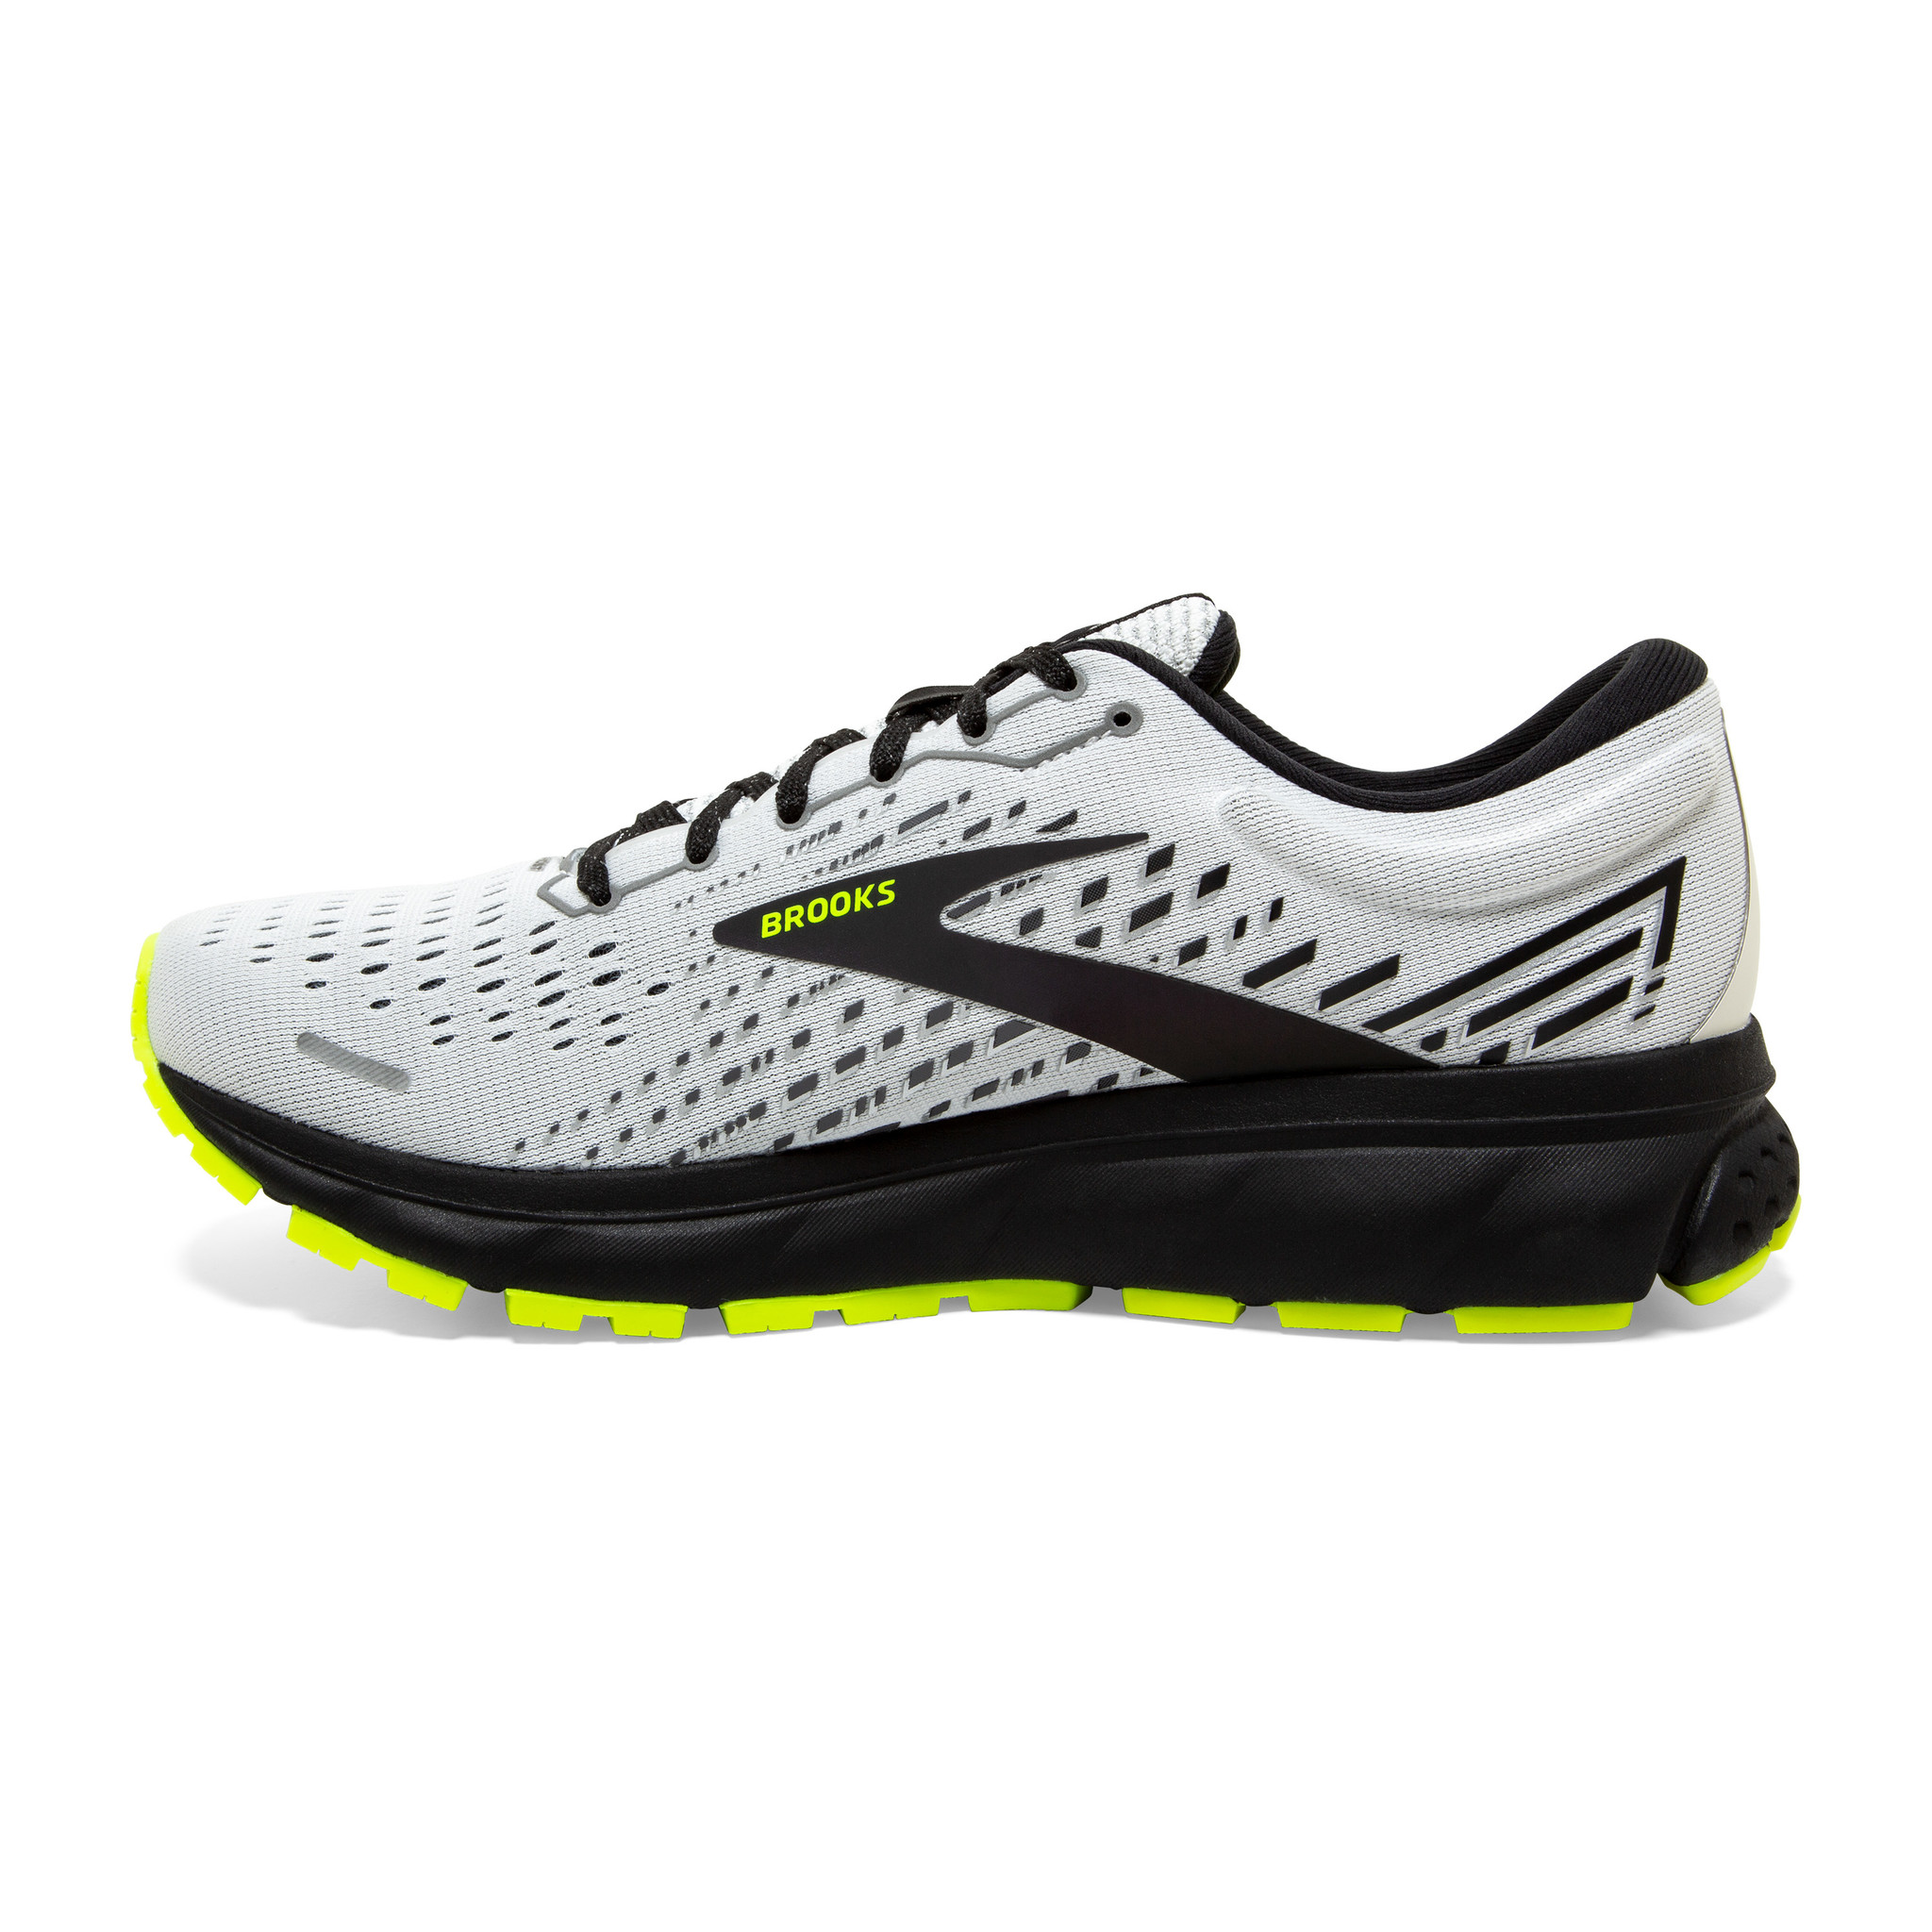 Brooks Brooks Ghost 13 Run Visible - Women